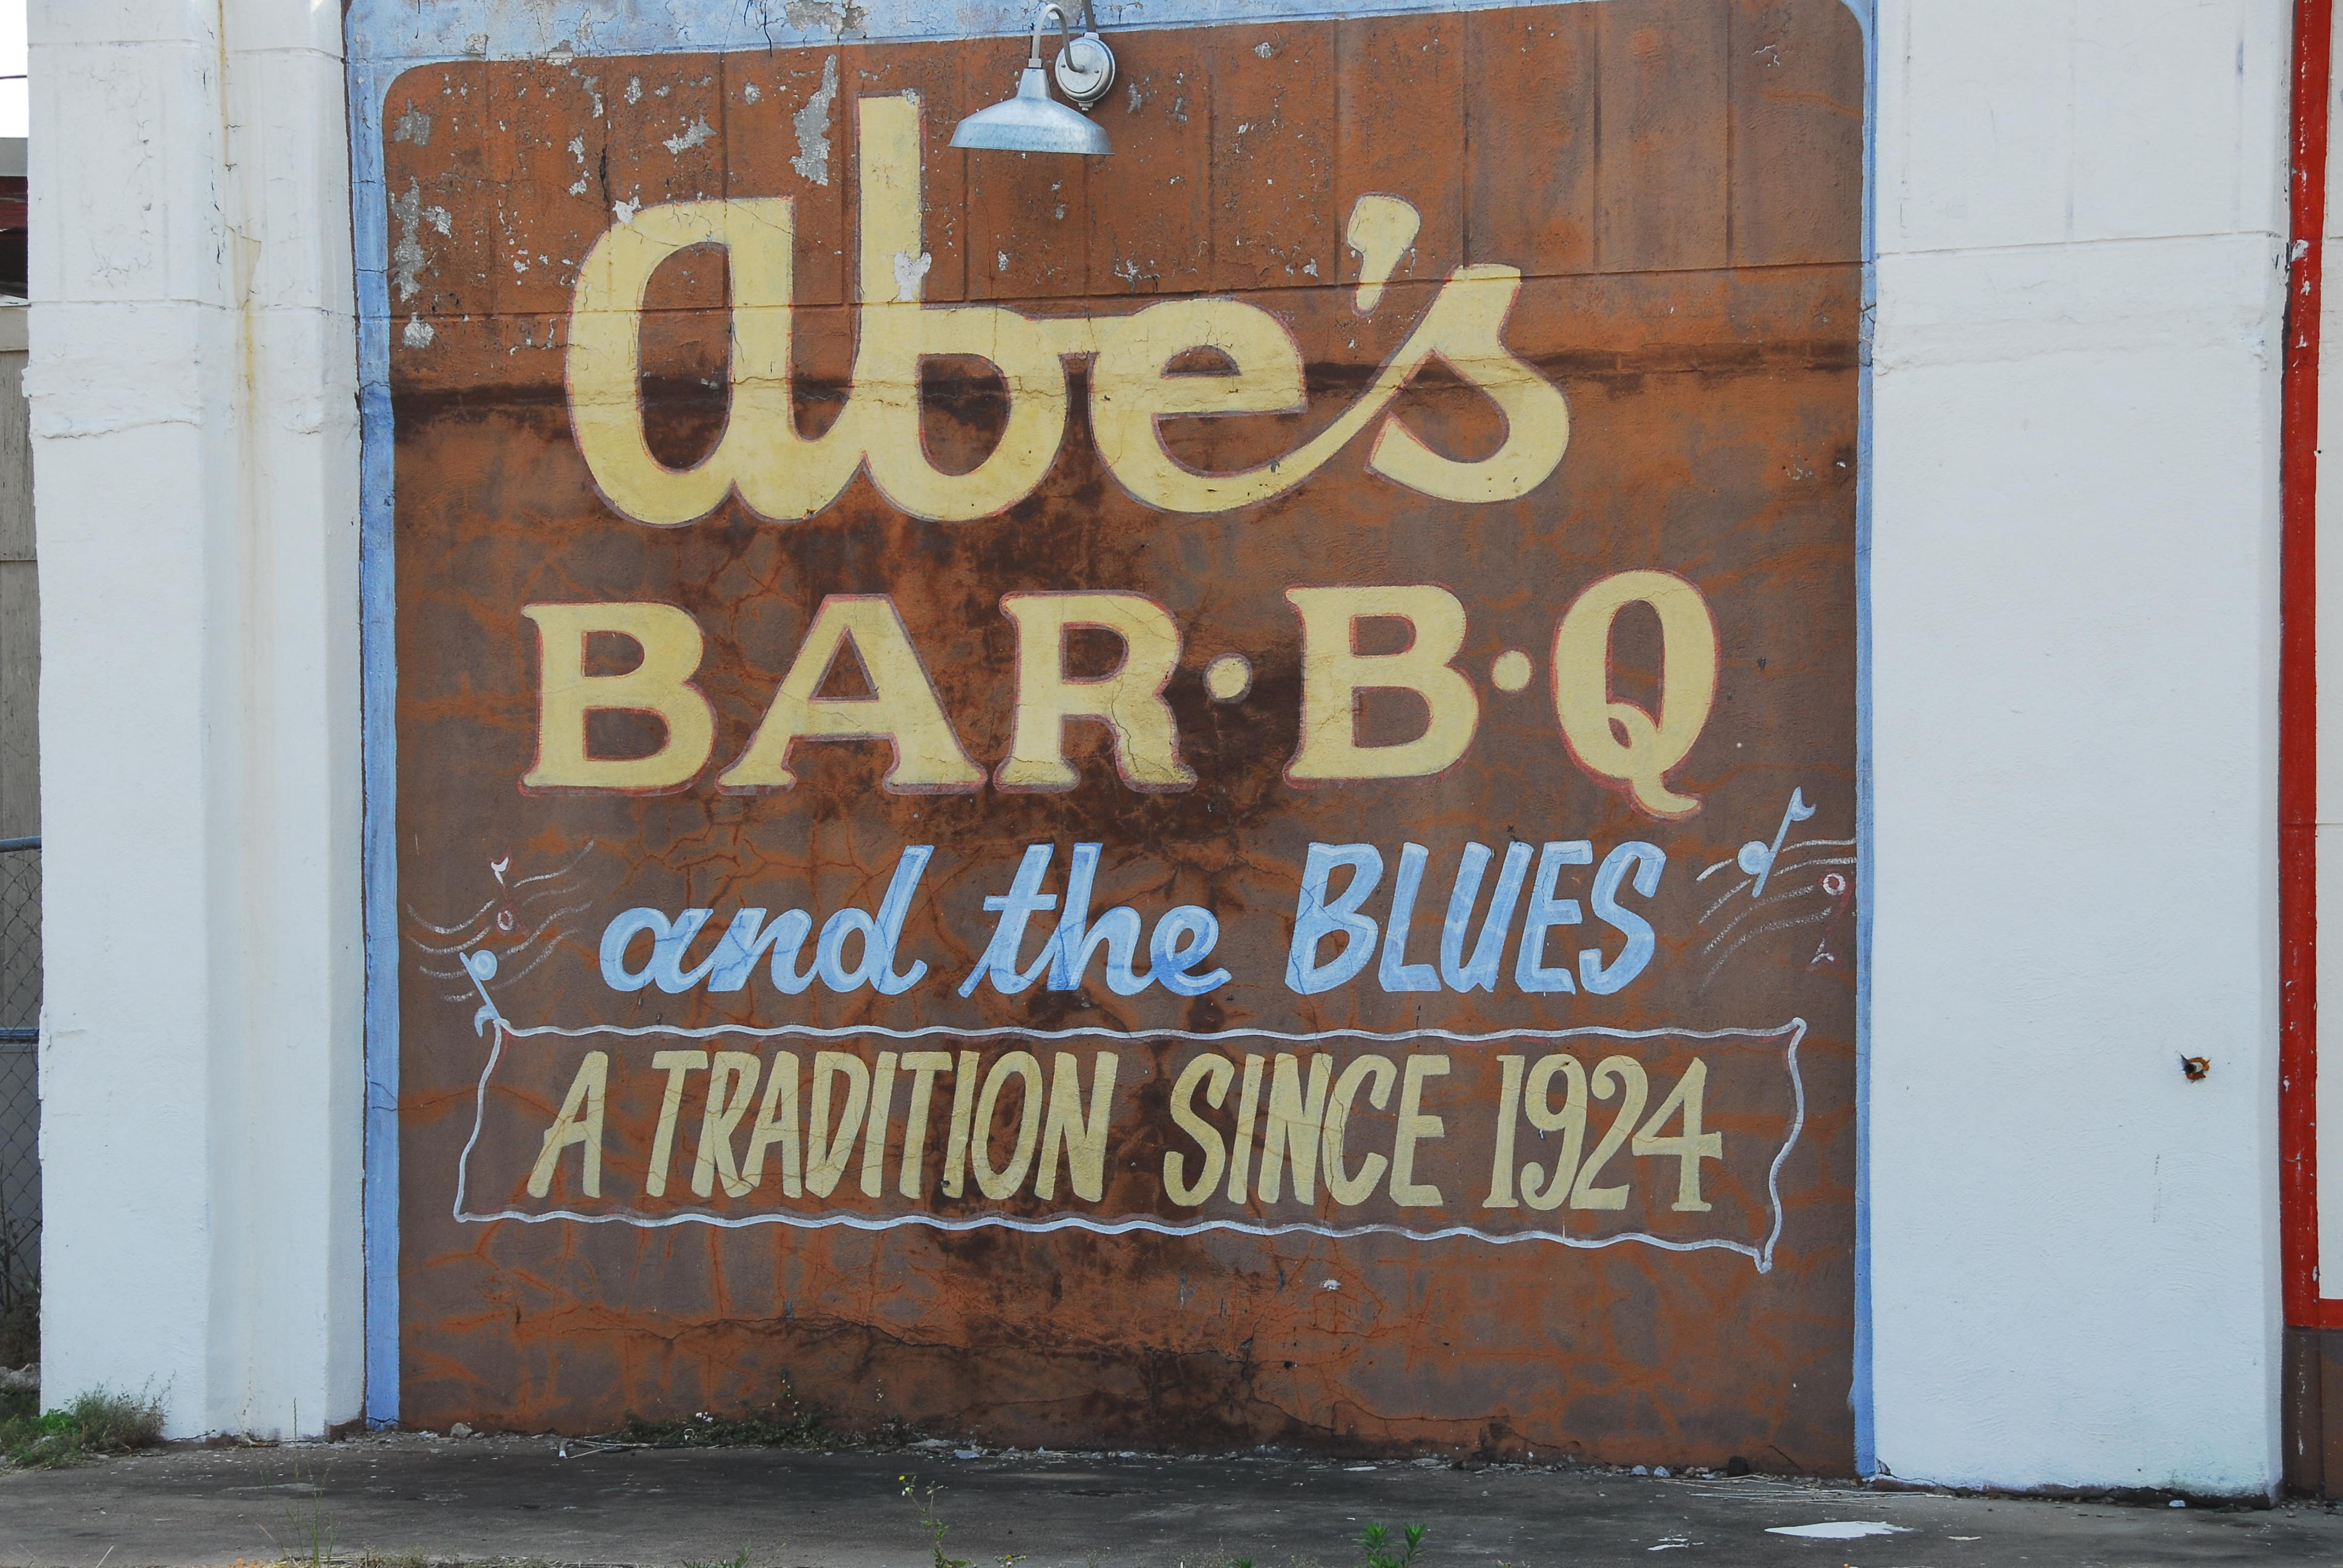 Clarksdale-Abes